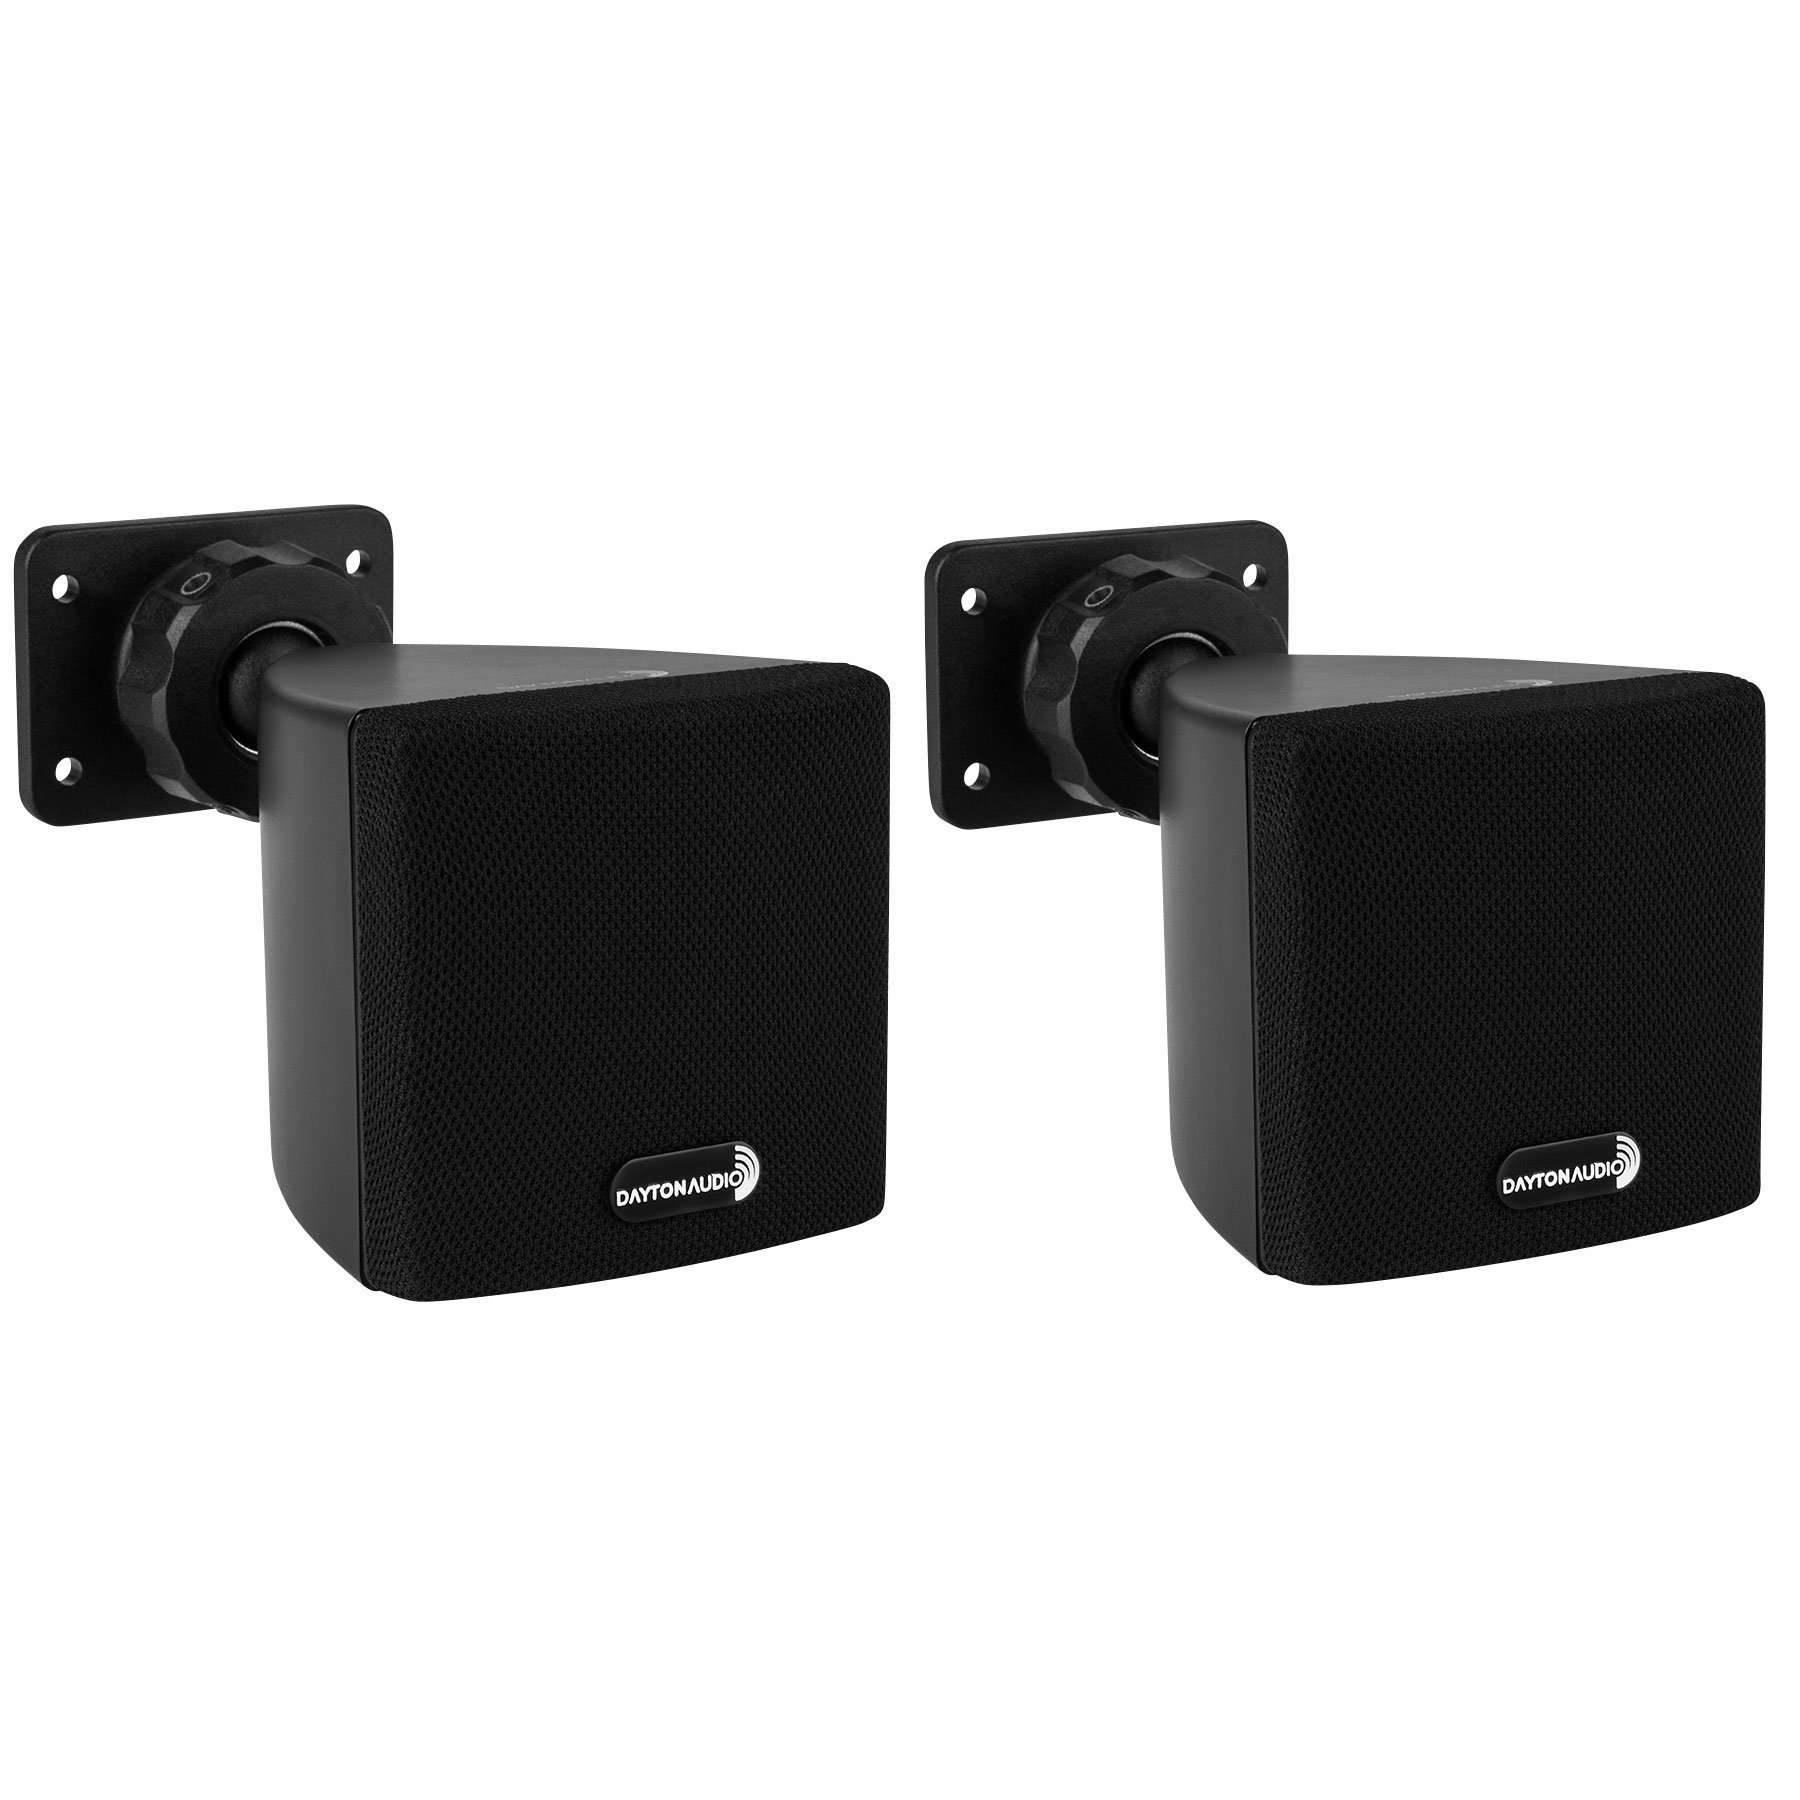 Dayton Audio SAT3B 3'' Cube Speaker Pair (Black) by Dayton Audio